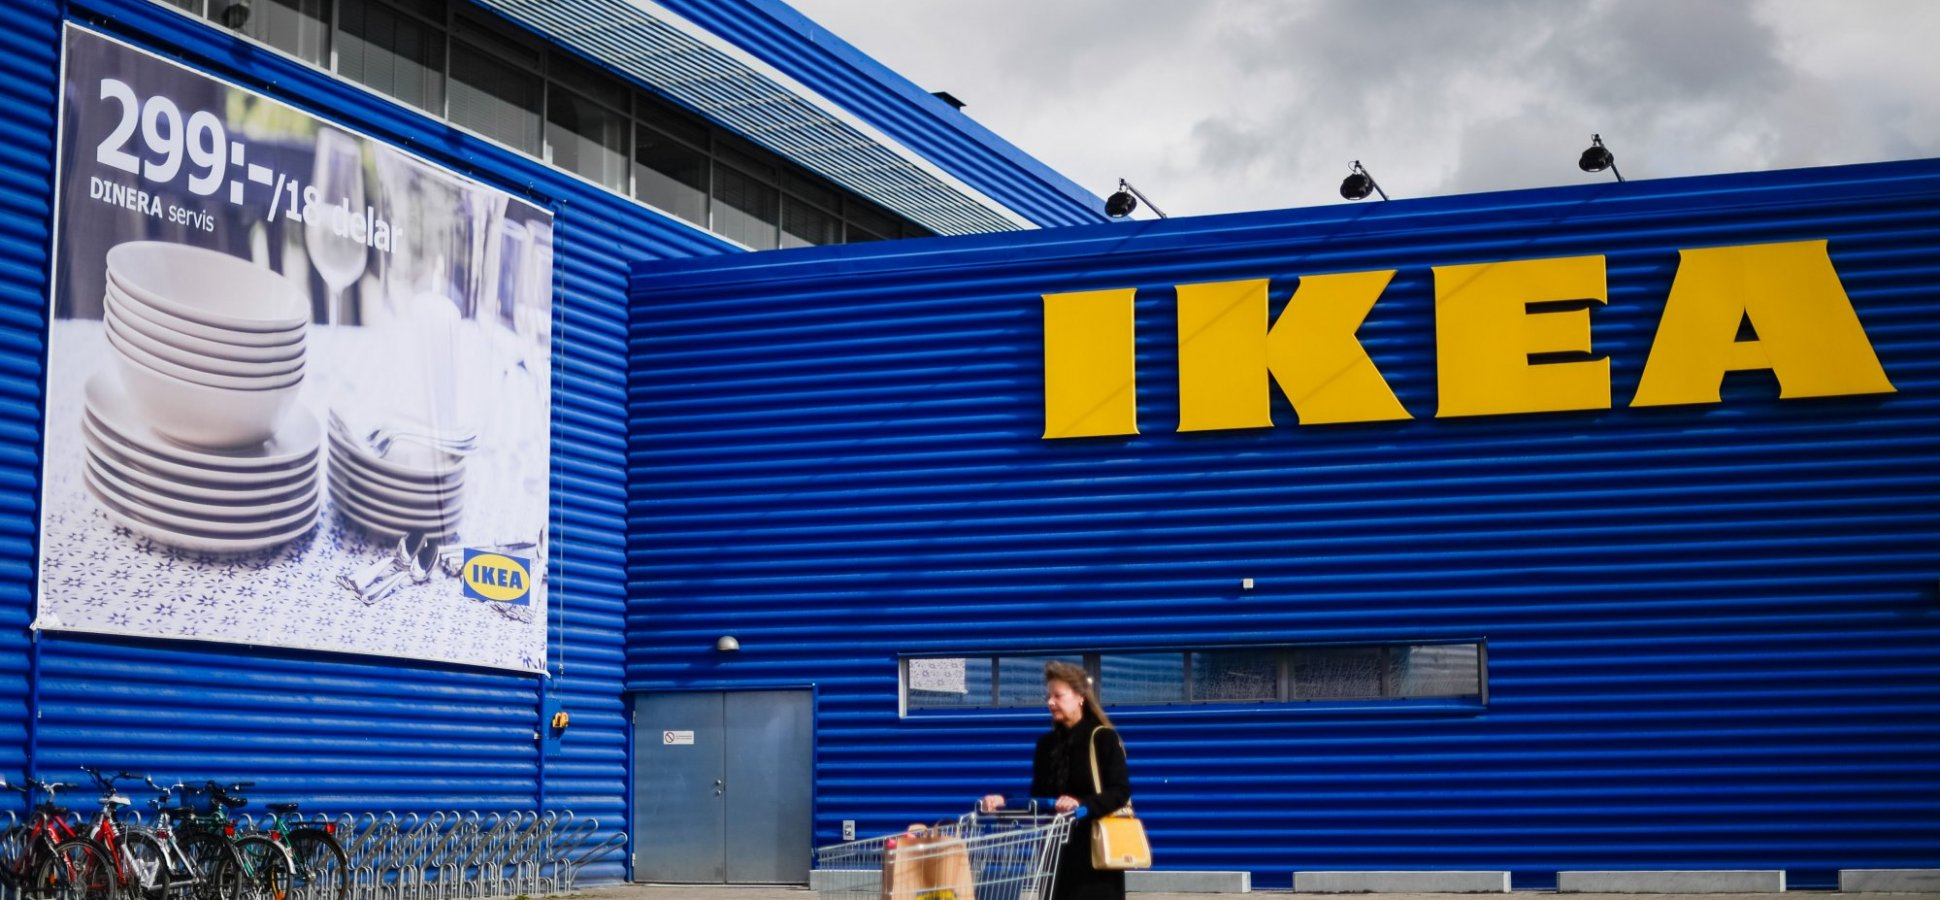 Ikea Just Made A Big Announcement That Could Forever Change